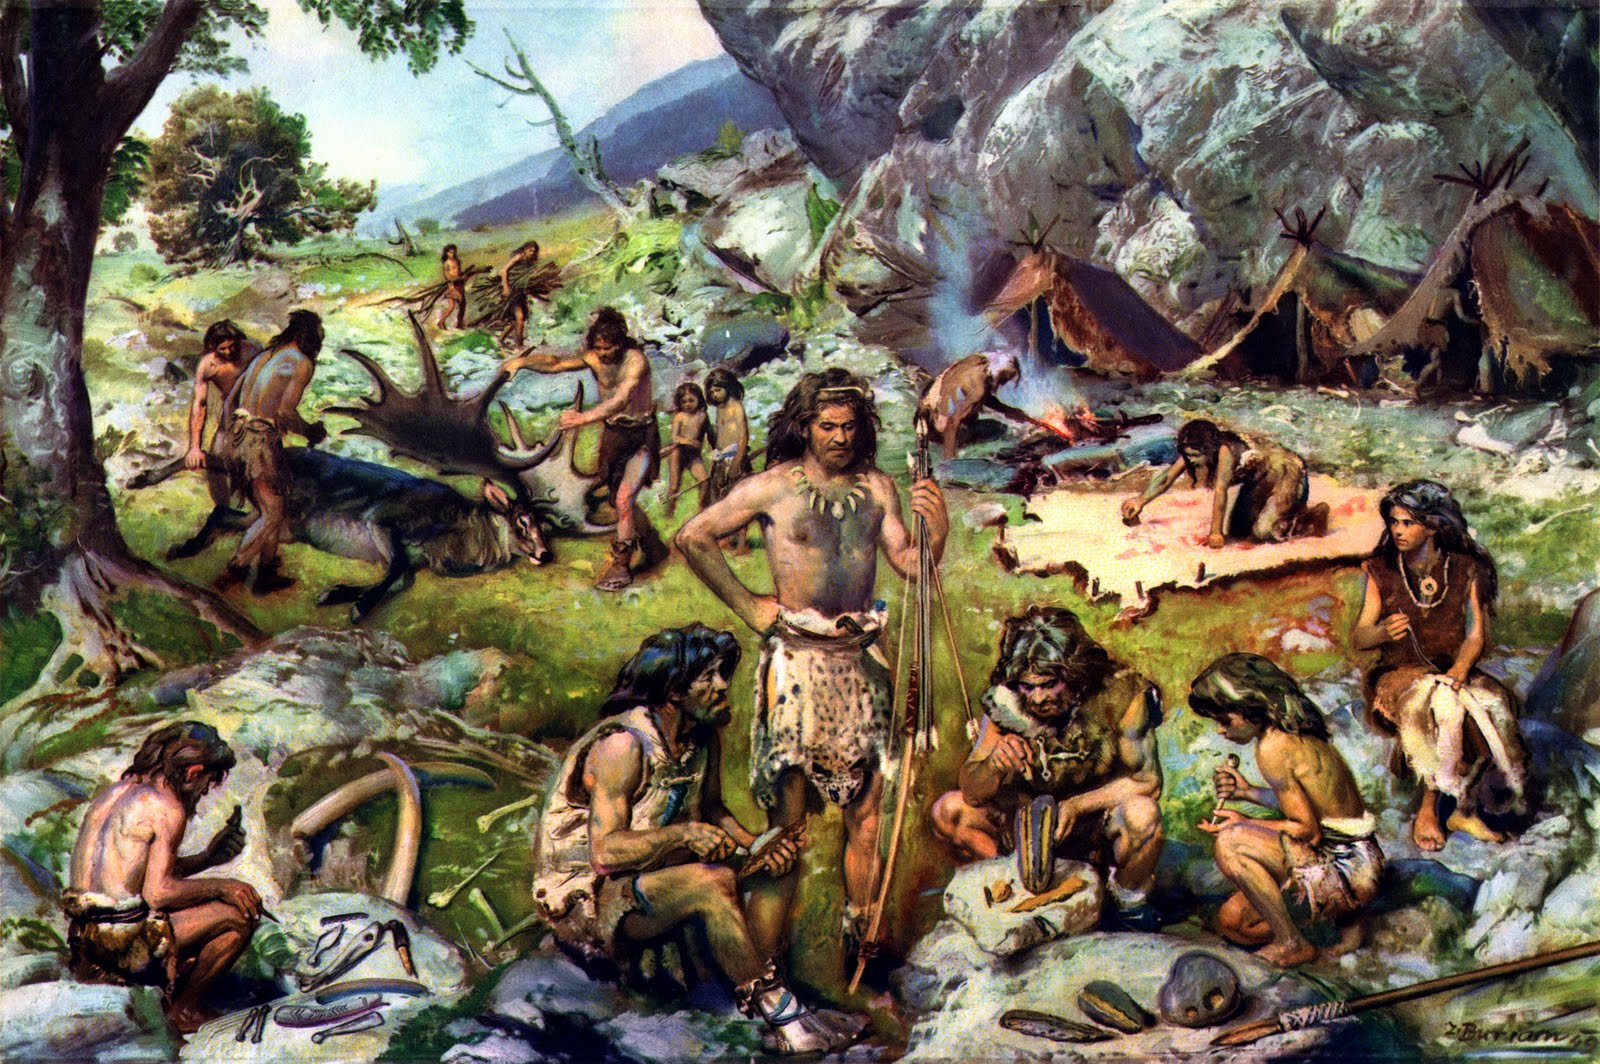 Painting of a group of primitive cave men sitting around their camp working at various tasks like skinning a deer and grinding plants